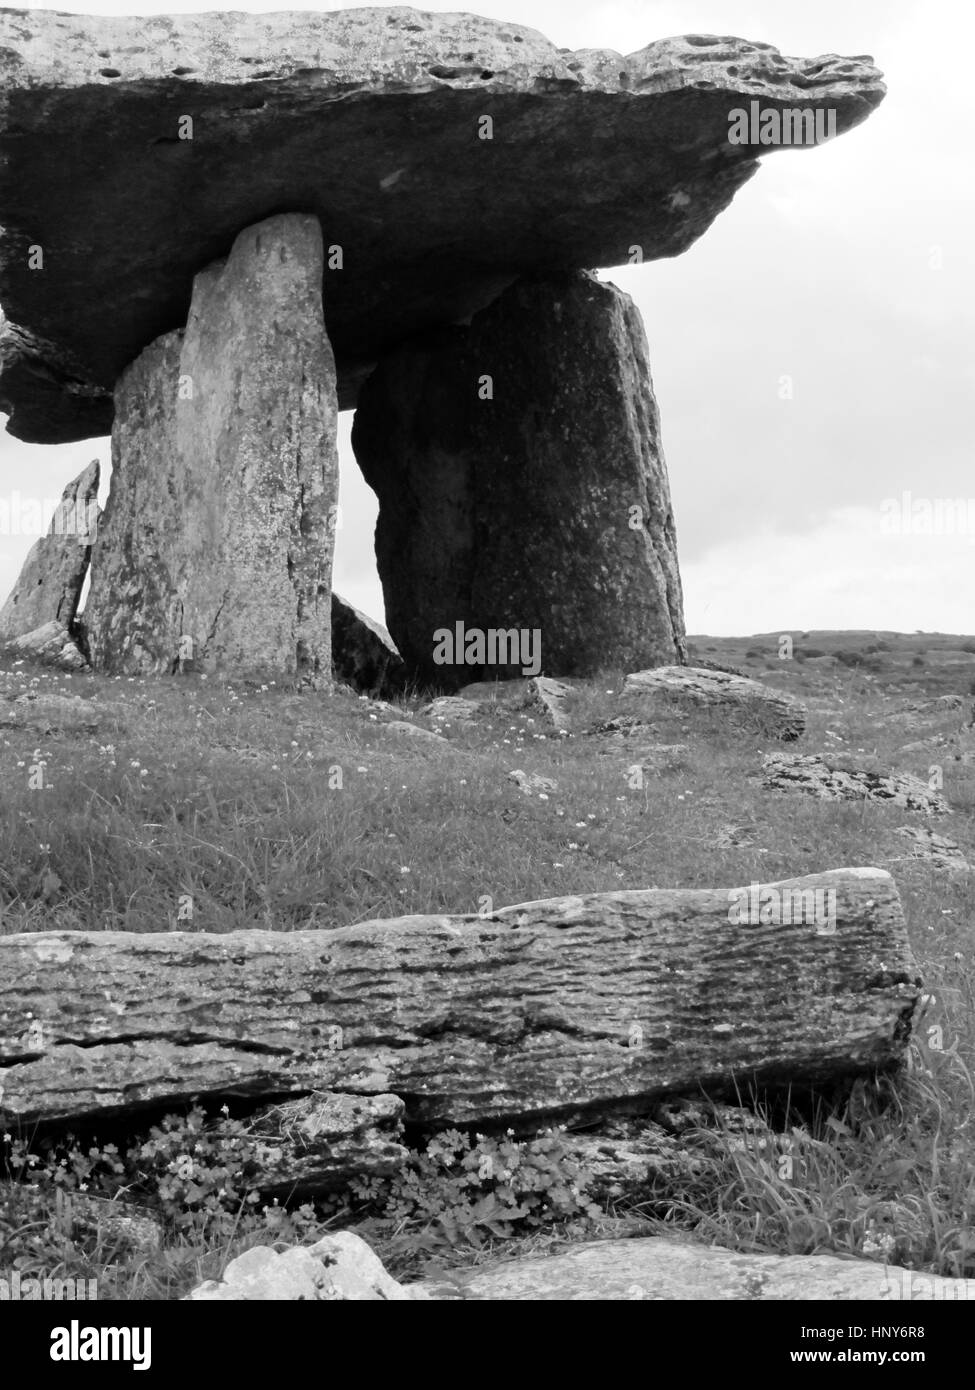 Poulnabrone dolmen - Clare - Ireland. An ancient burial site in the West of Ireland - Stock Image